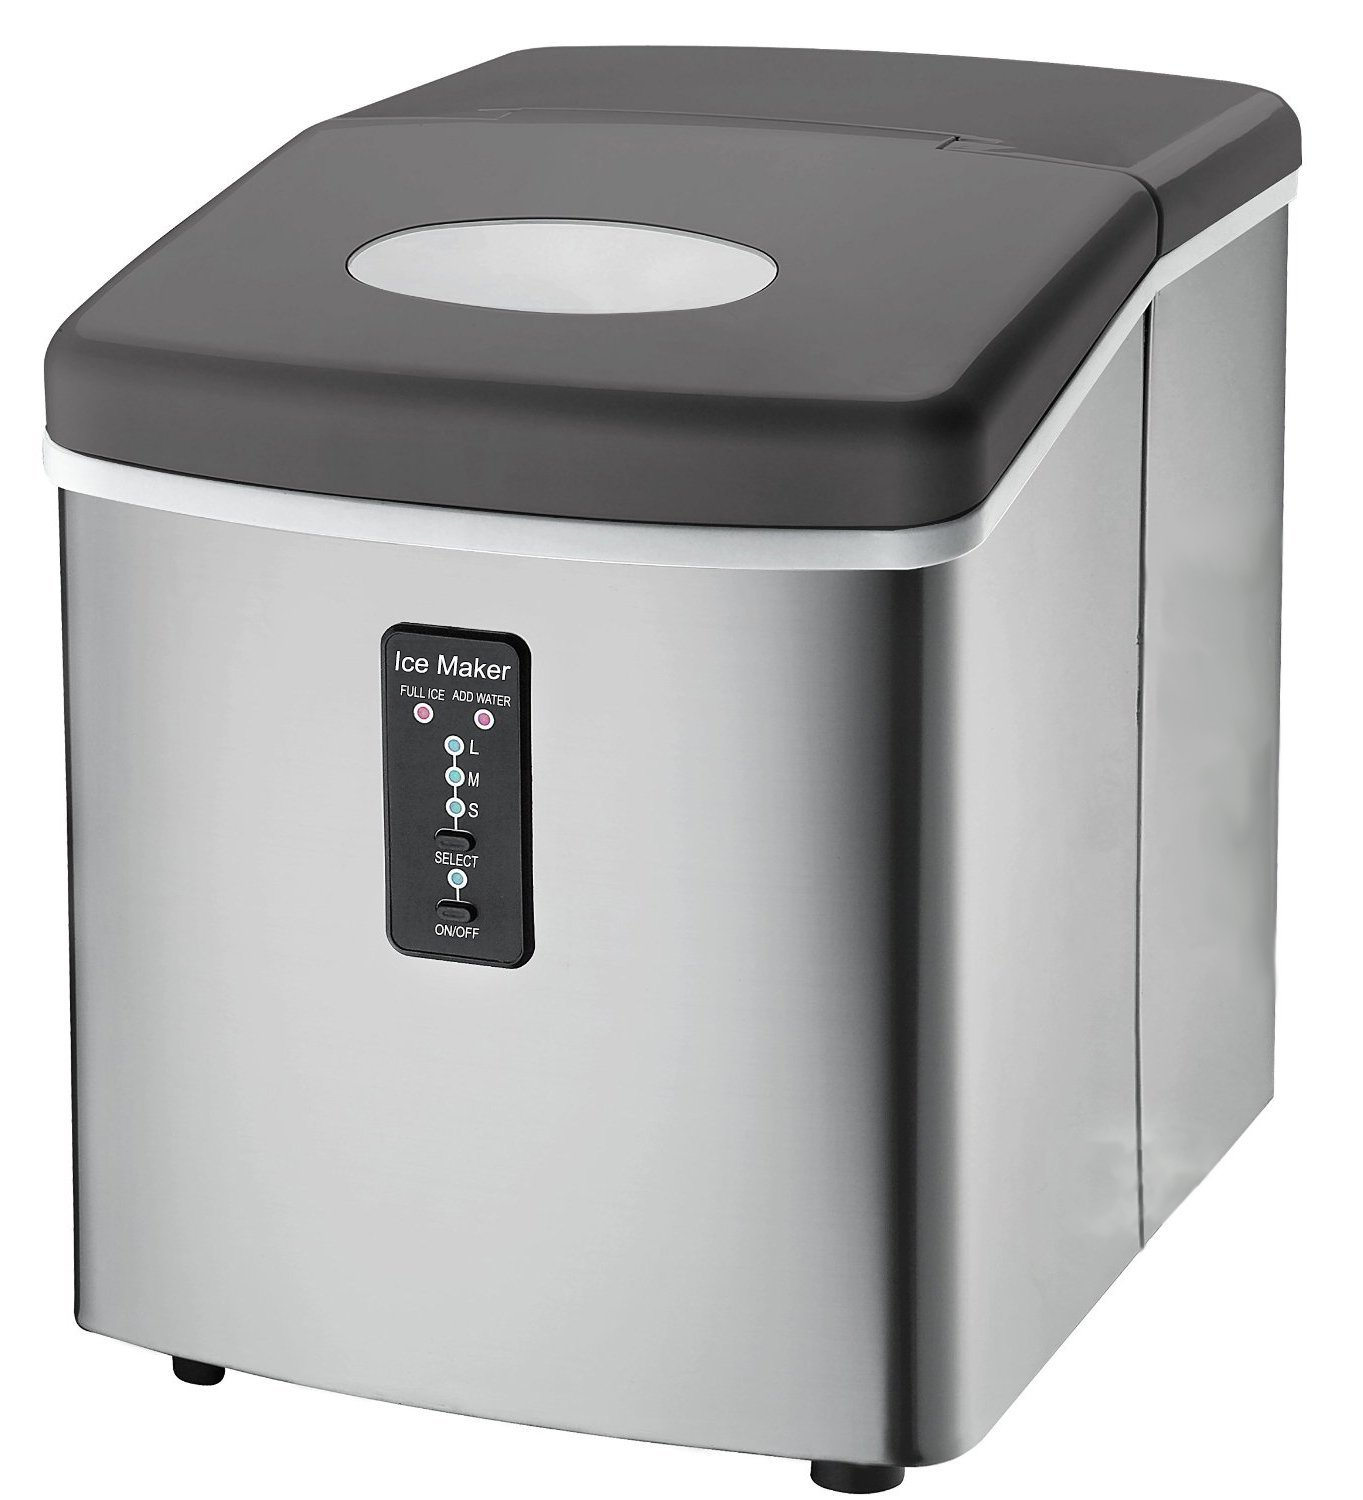 Cube Ice Maker Ice Maker Machine Portable Compact Countertop 26 Lbs Cube Nugget